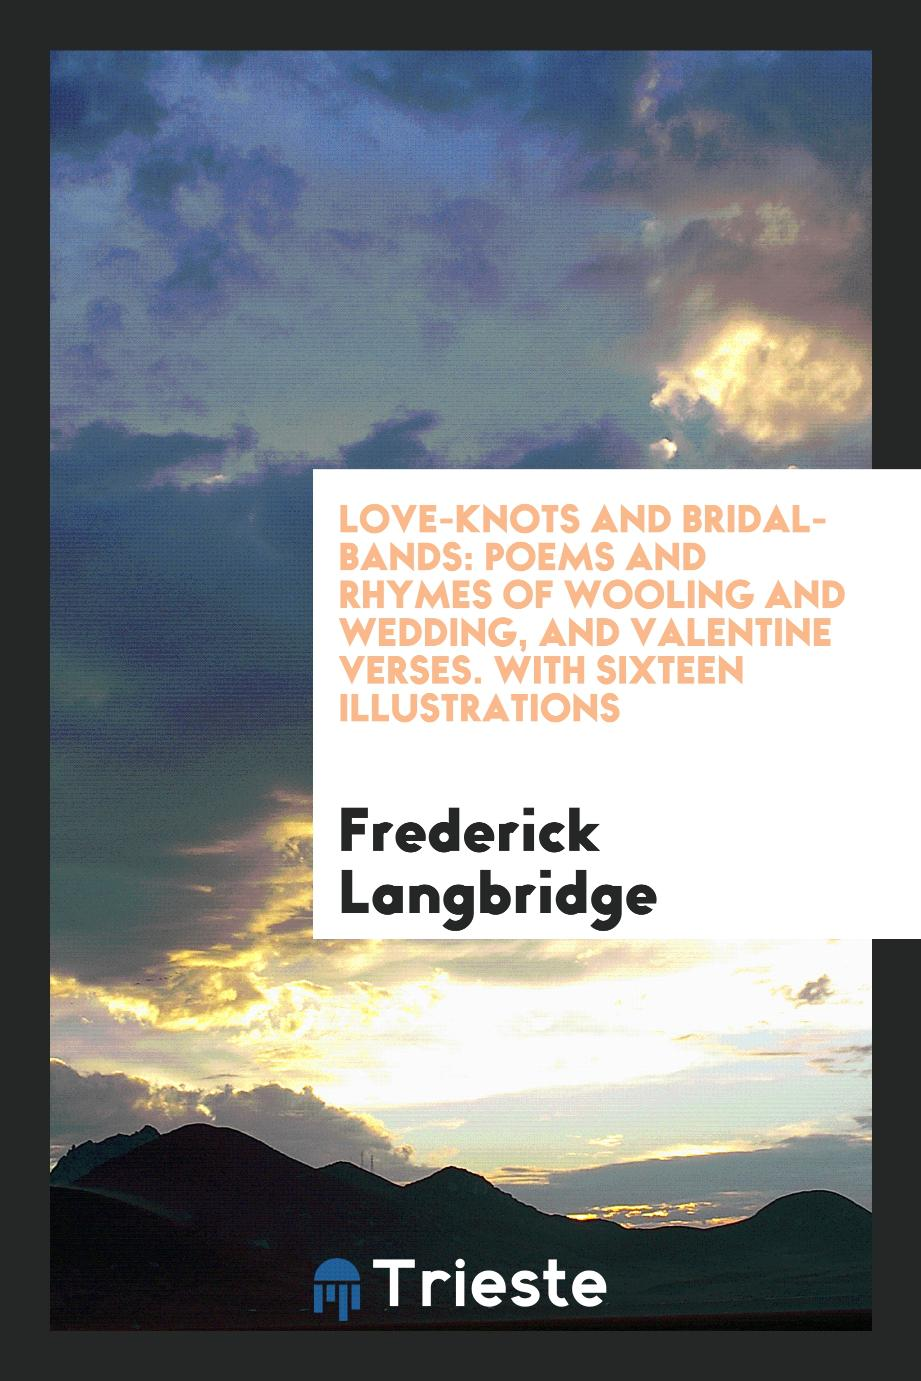 Love-Knots and Bridal-Bands: Poems and Rhymes of Wooling and Wedding, and Valentine Verses. With Sixteen Illustrations